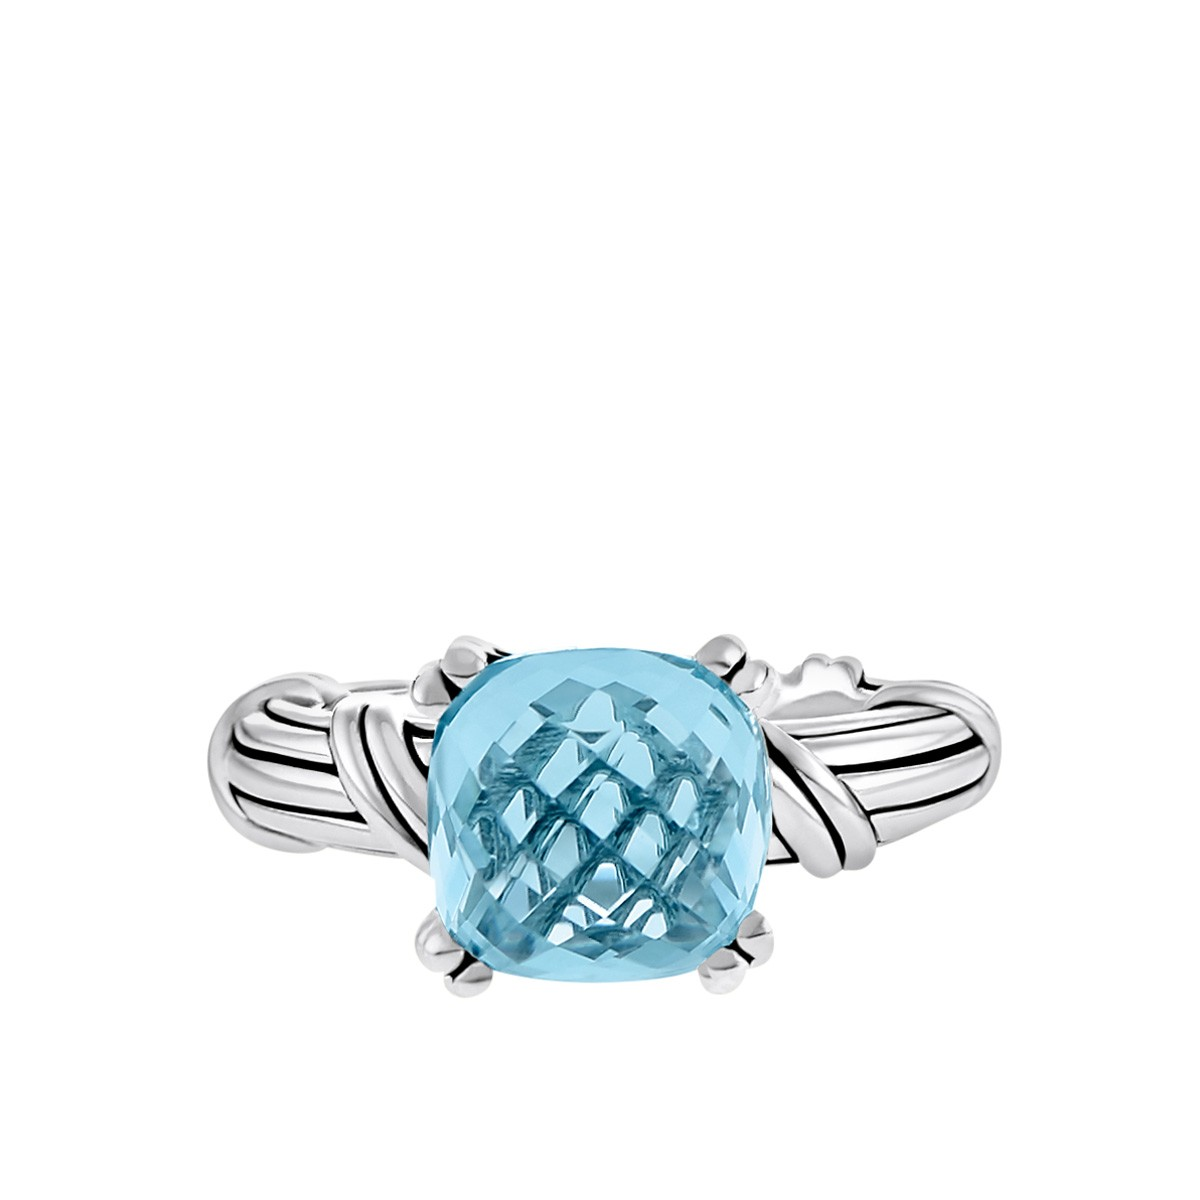 Fantasies Blue Topaz Cocktail Ring in sterling silver 10mm